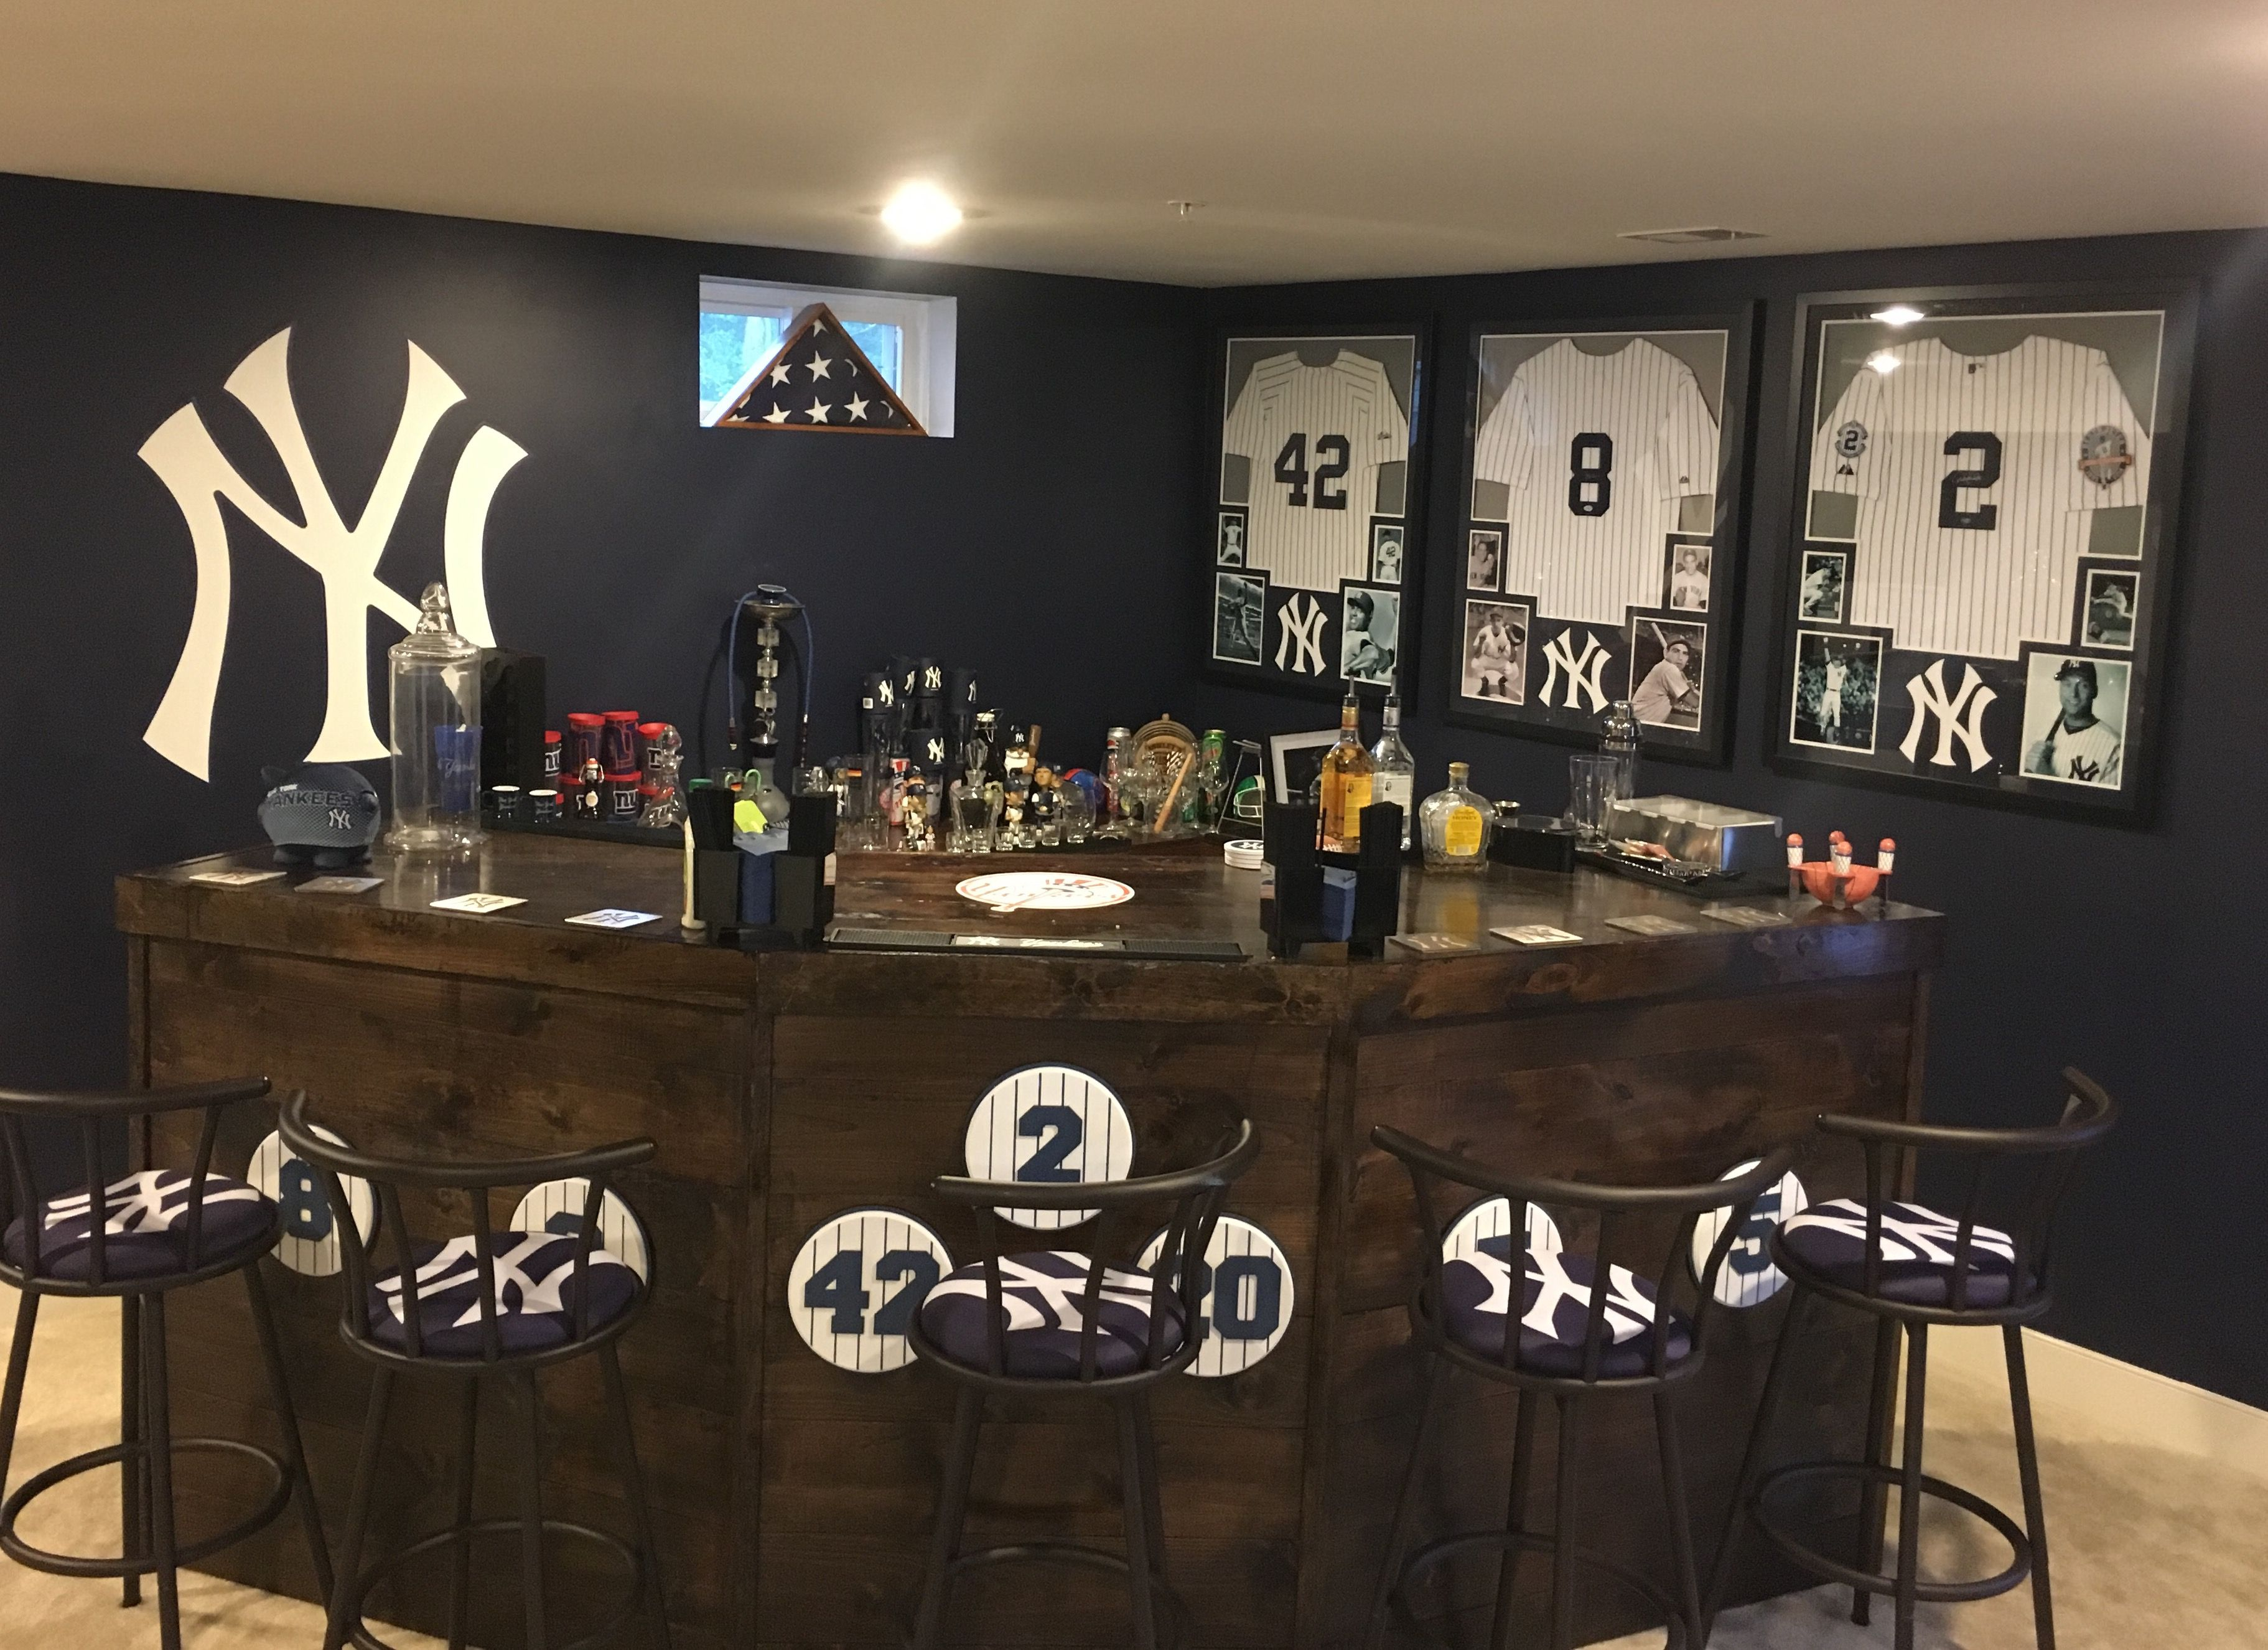 Updates To Our New York Yankees Bar Upholstered Nyy Bar Stools And Some Amazing New Autographed Jerseys Yankee Room Man Cave Home Bar Bar Room Ny yankees bathroom decor